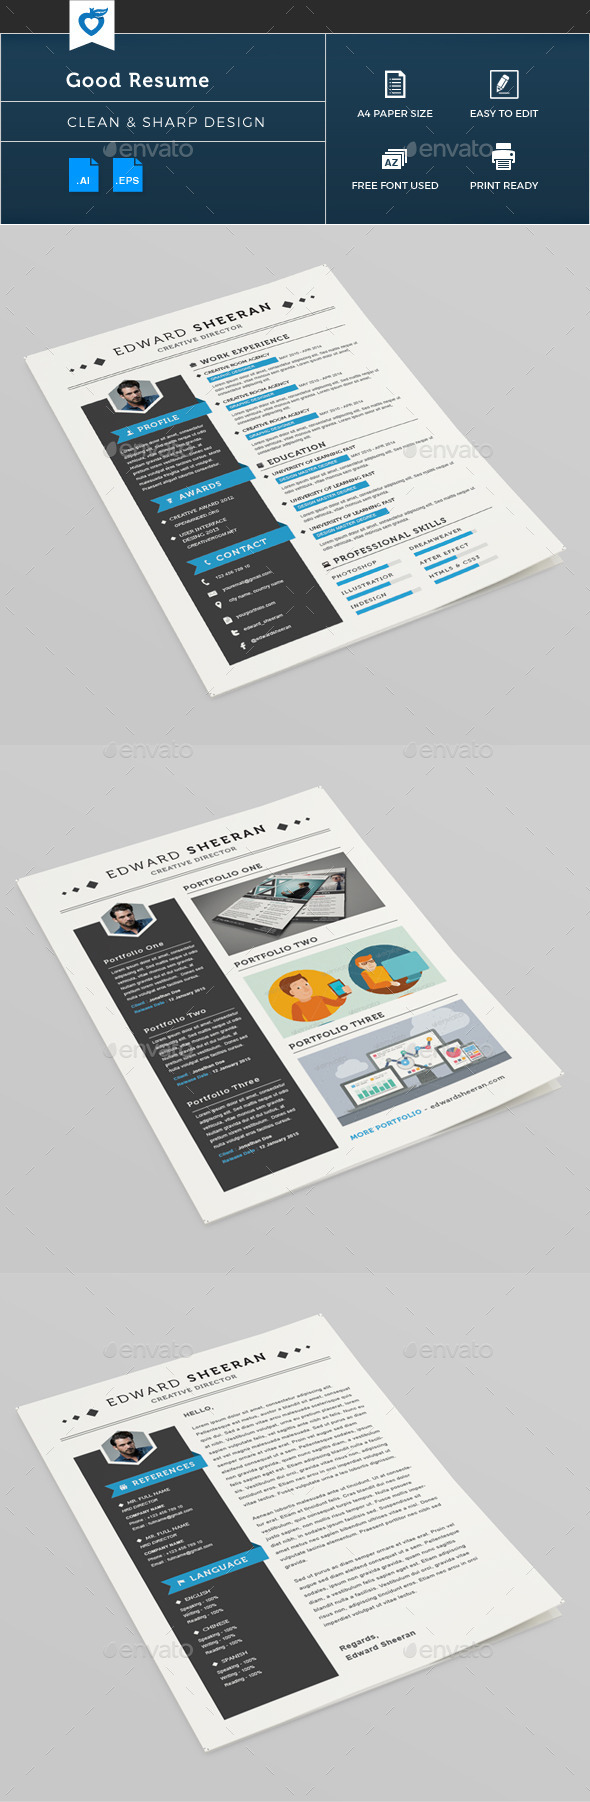 GraphicRiver Good Resume 11165982